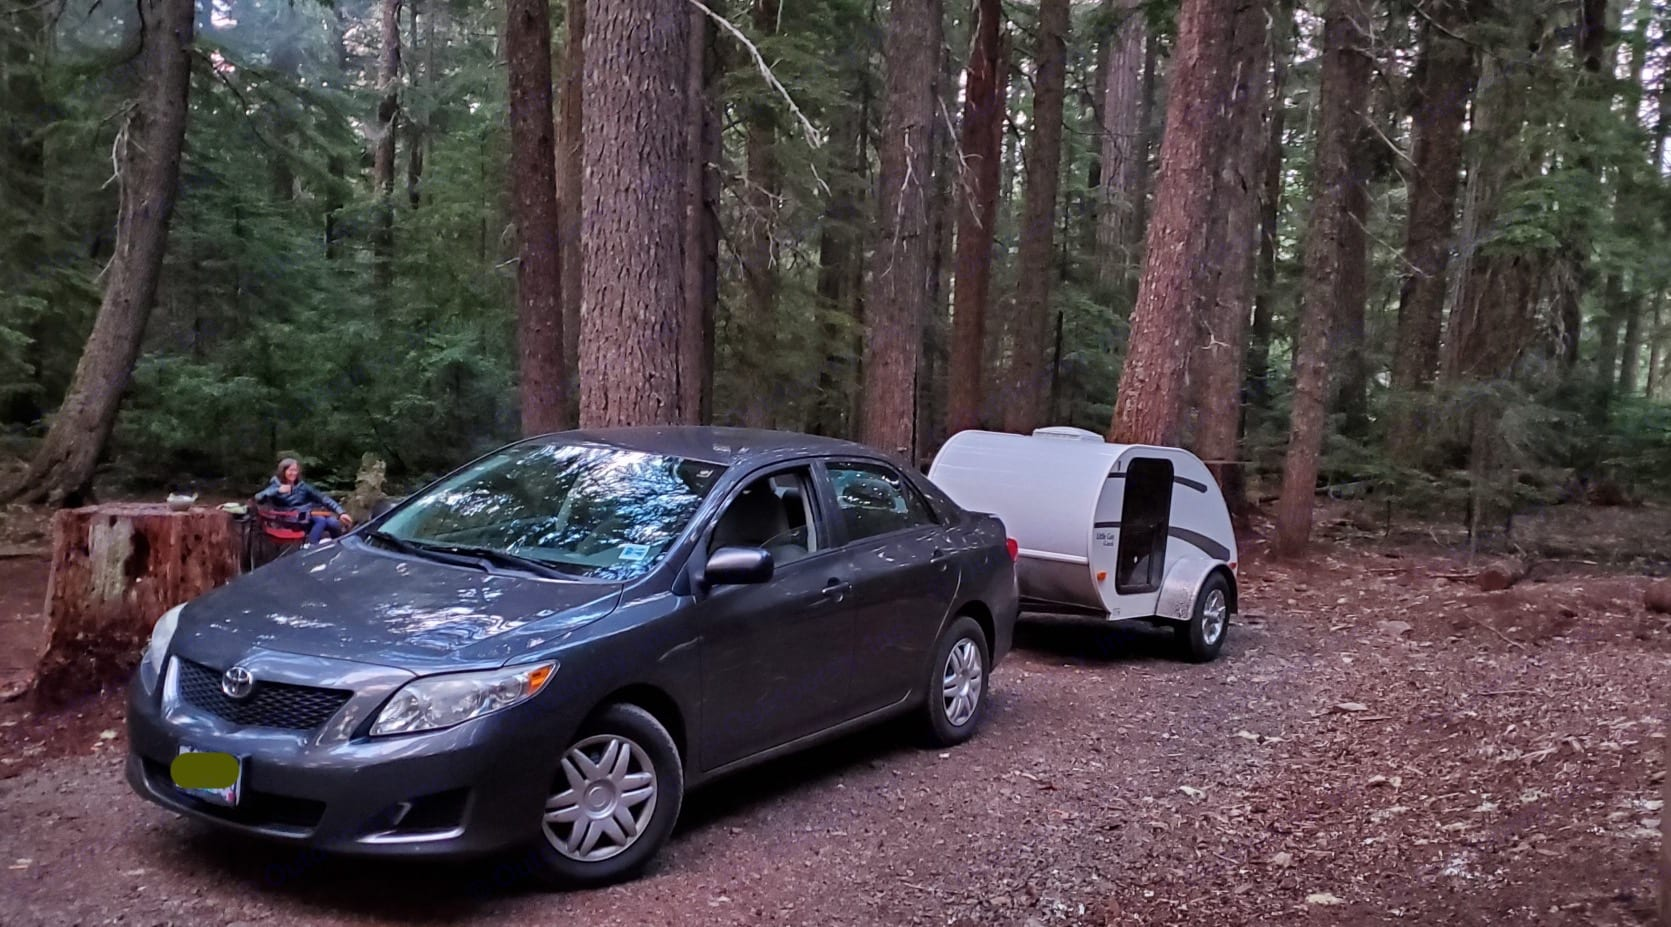 Up at a lake on Mt. Hood. So easy to tow. Even with a Toyota Corolla, you barely know it's there.. Little Guy Rascal 2009